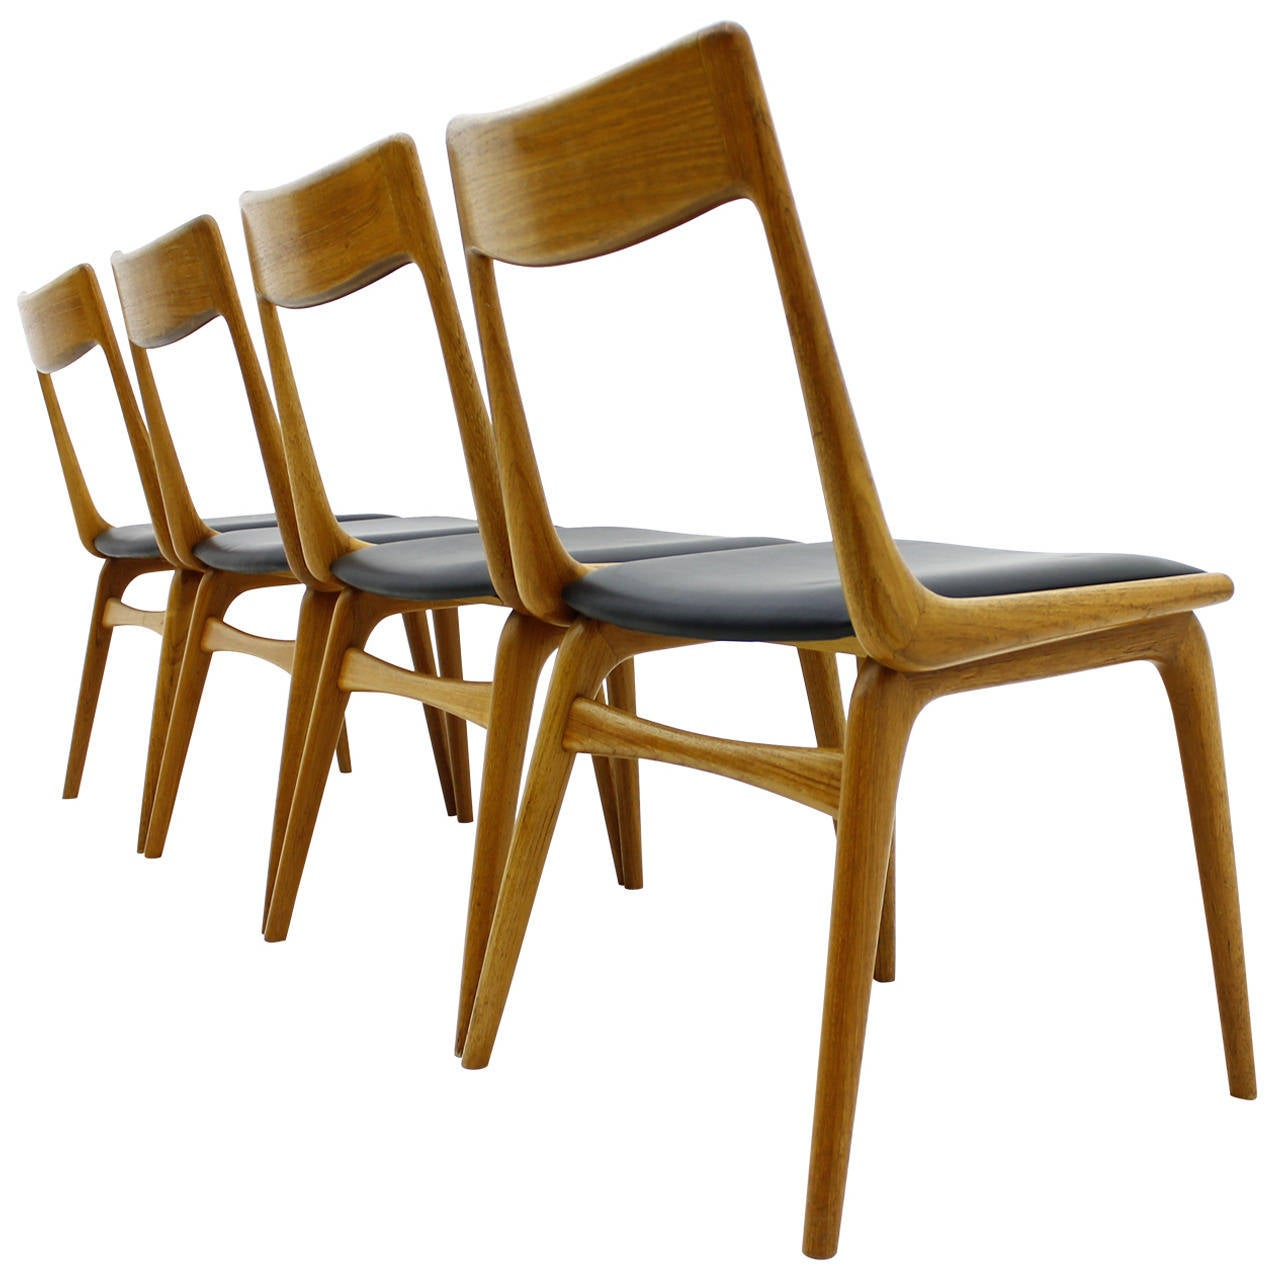 Wonderful Erik Christensen Boomerang Dining Chairs, Teak And Leather, Denmark, 1950s 1